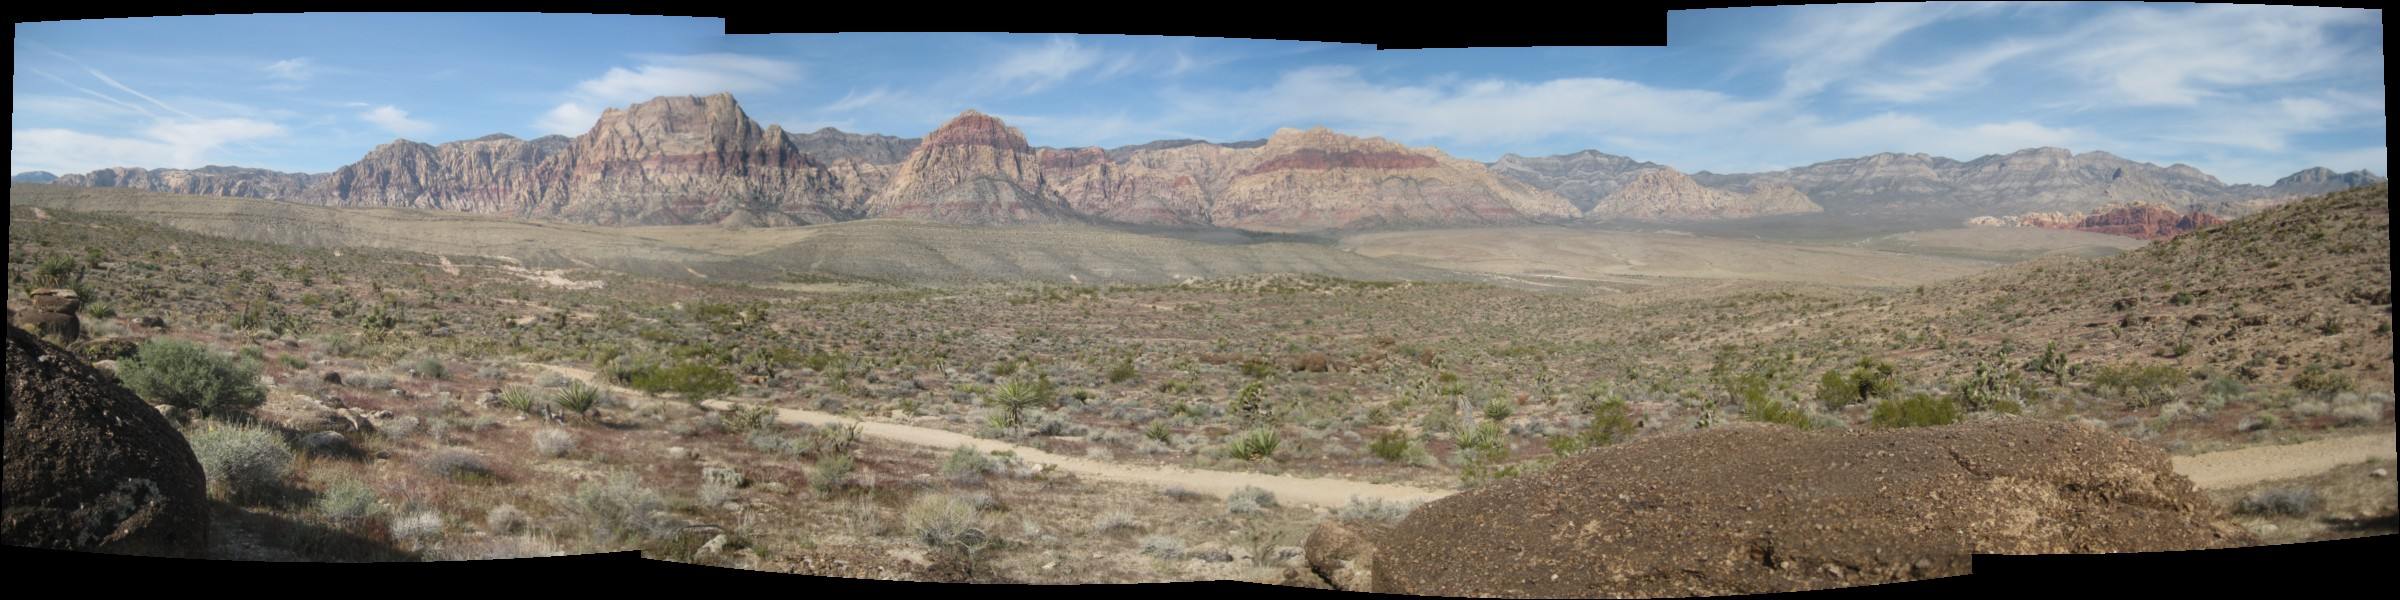 panoramic photo of the mountains near Red Rock Canyon